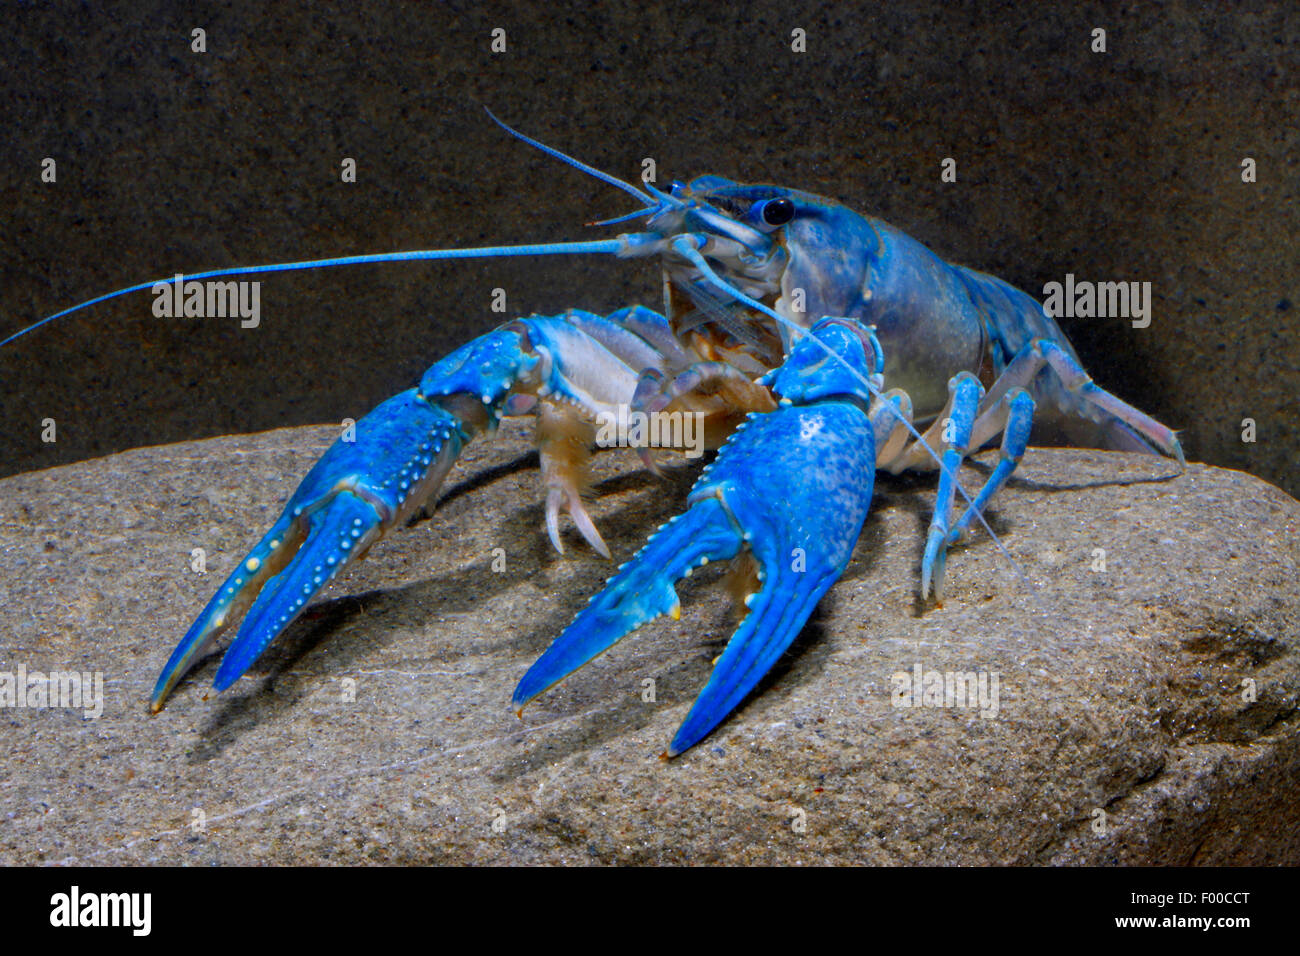 Nail Polish Crayfish (Orconectes immunis), blue morph, Germany - Stock Image